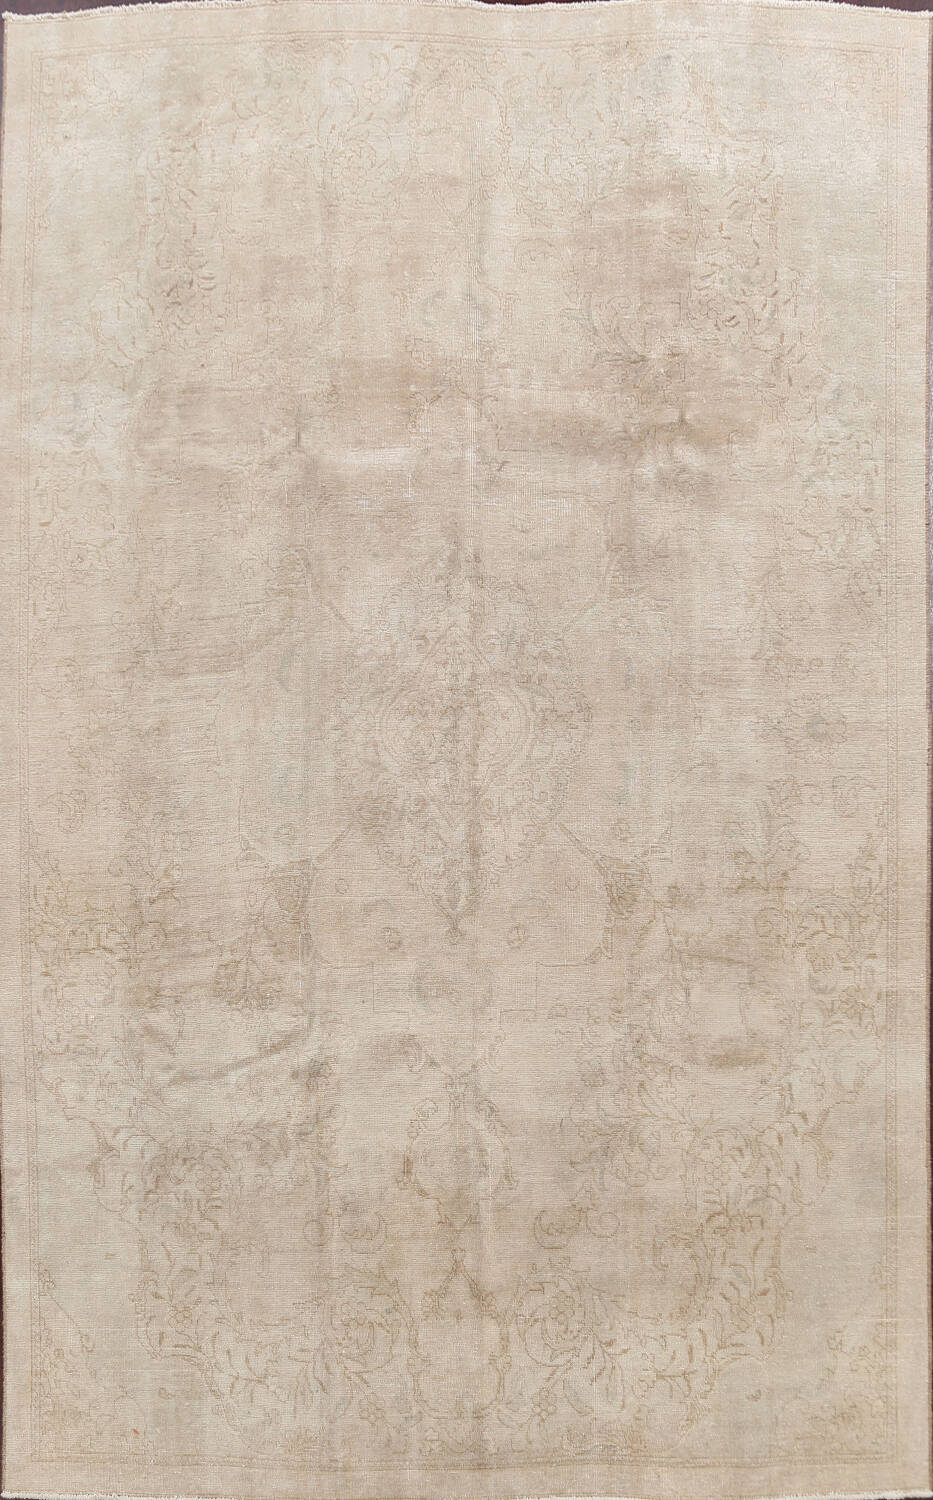 Antique Muted Floral Tabriz Persian Area Rug 7x11 image 1